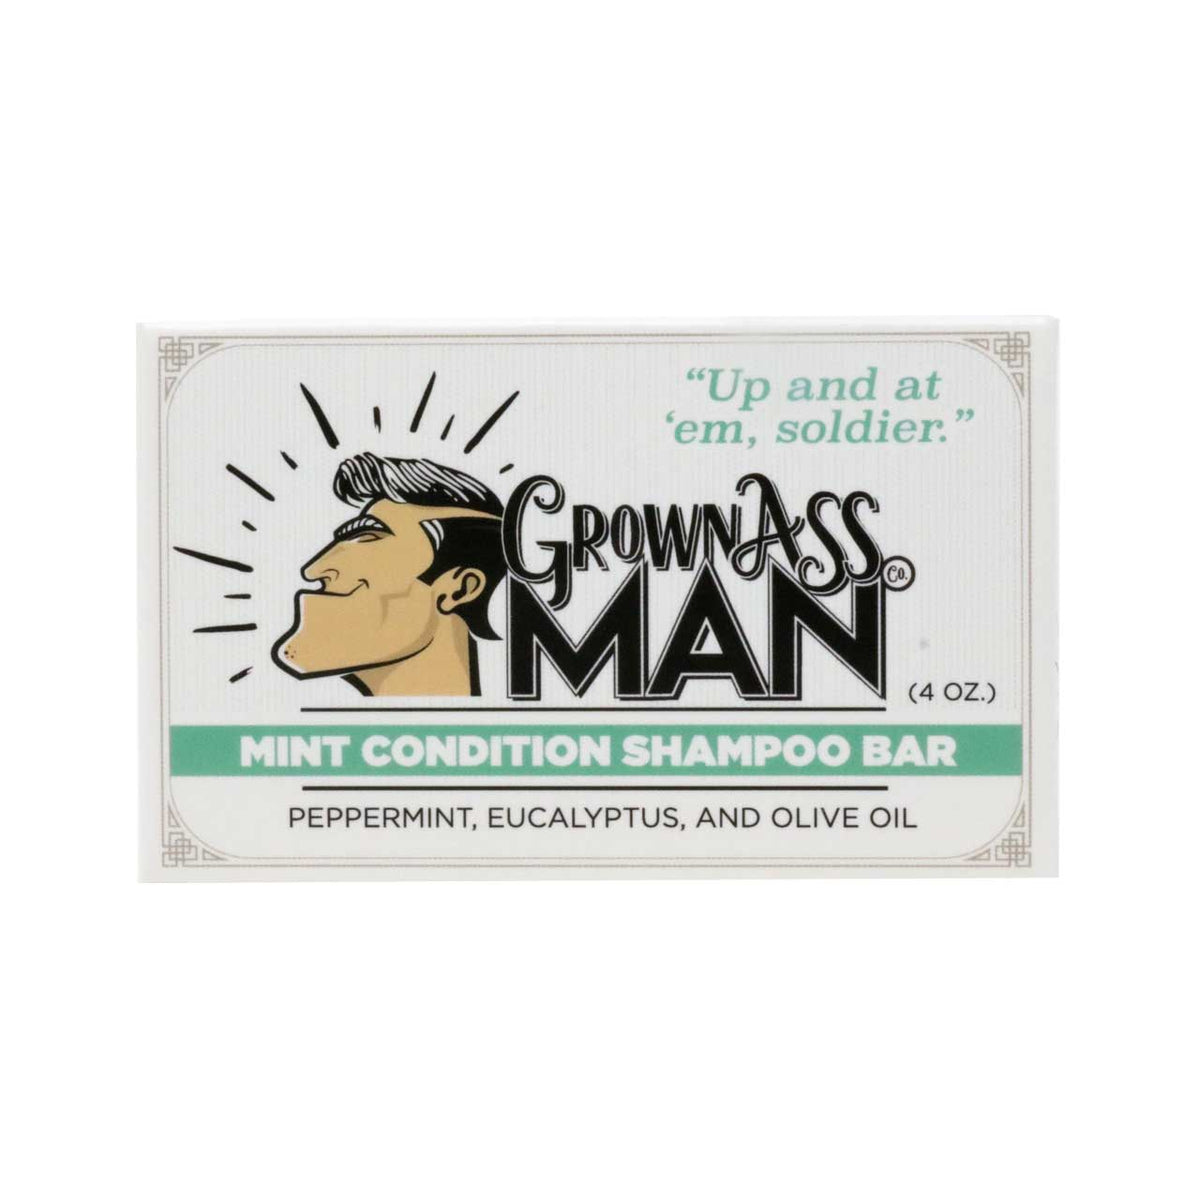 Mint Condition Shampoo Bar - 6 Pack